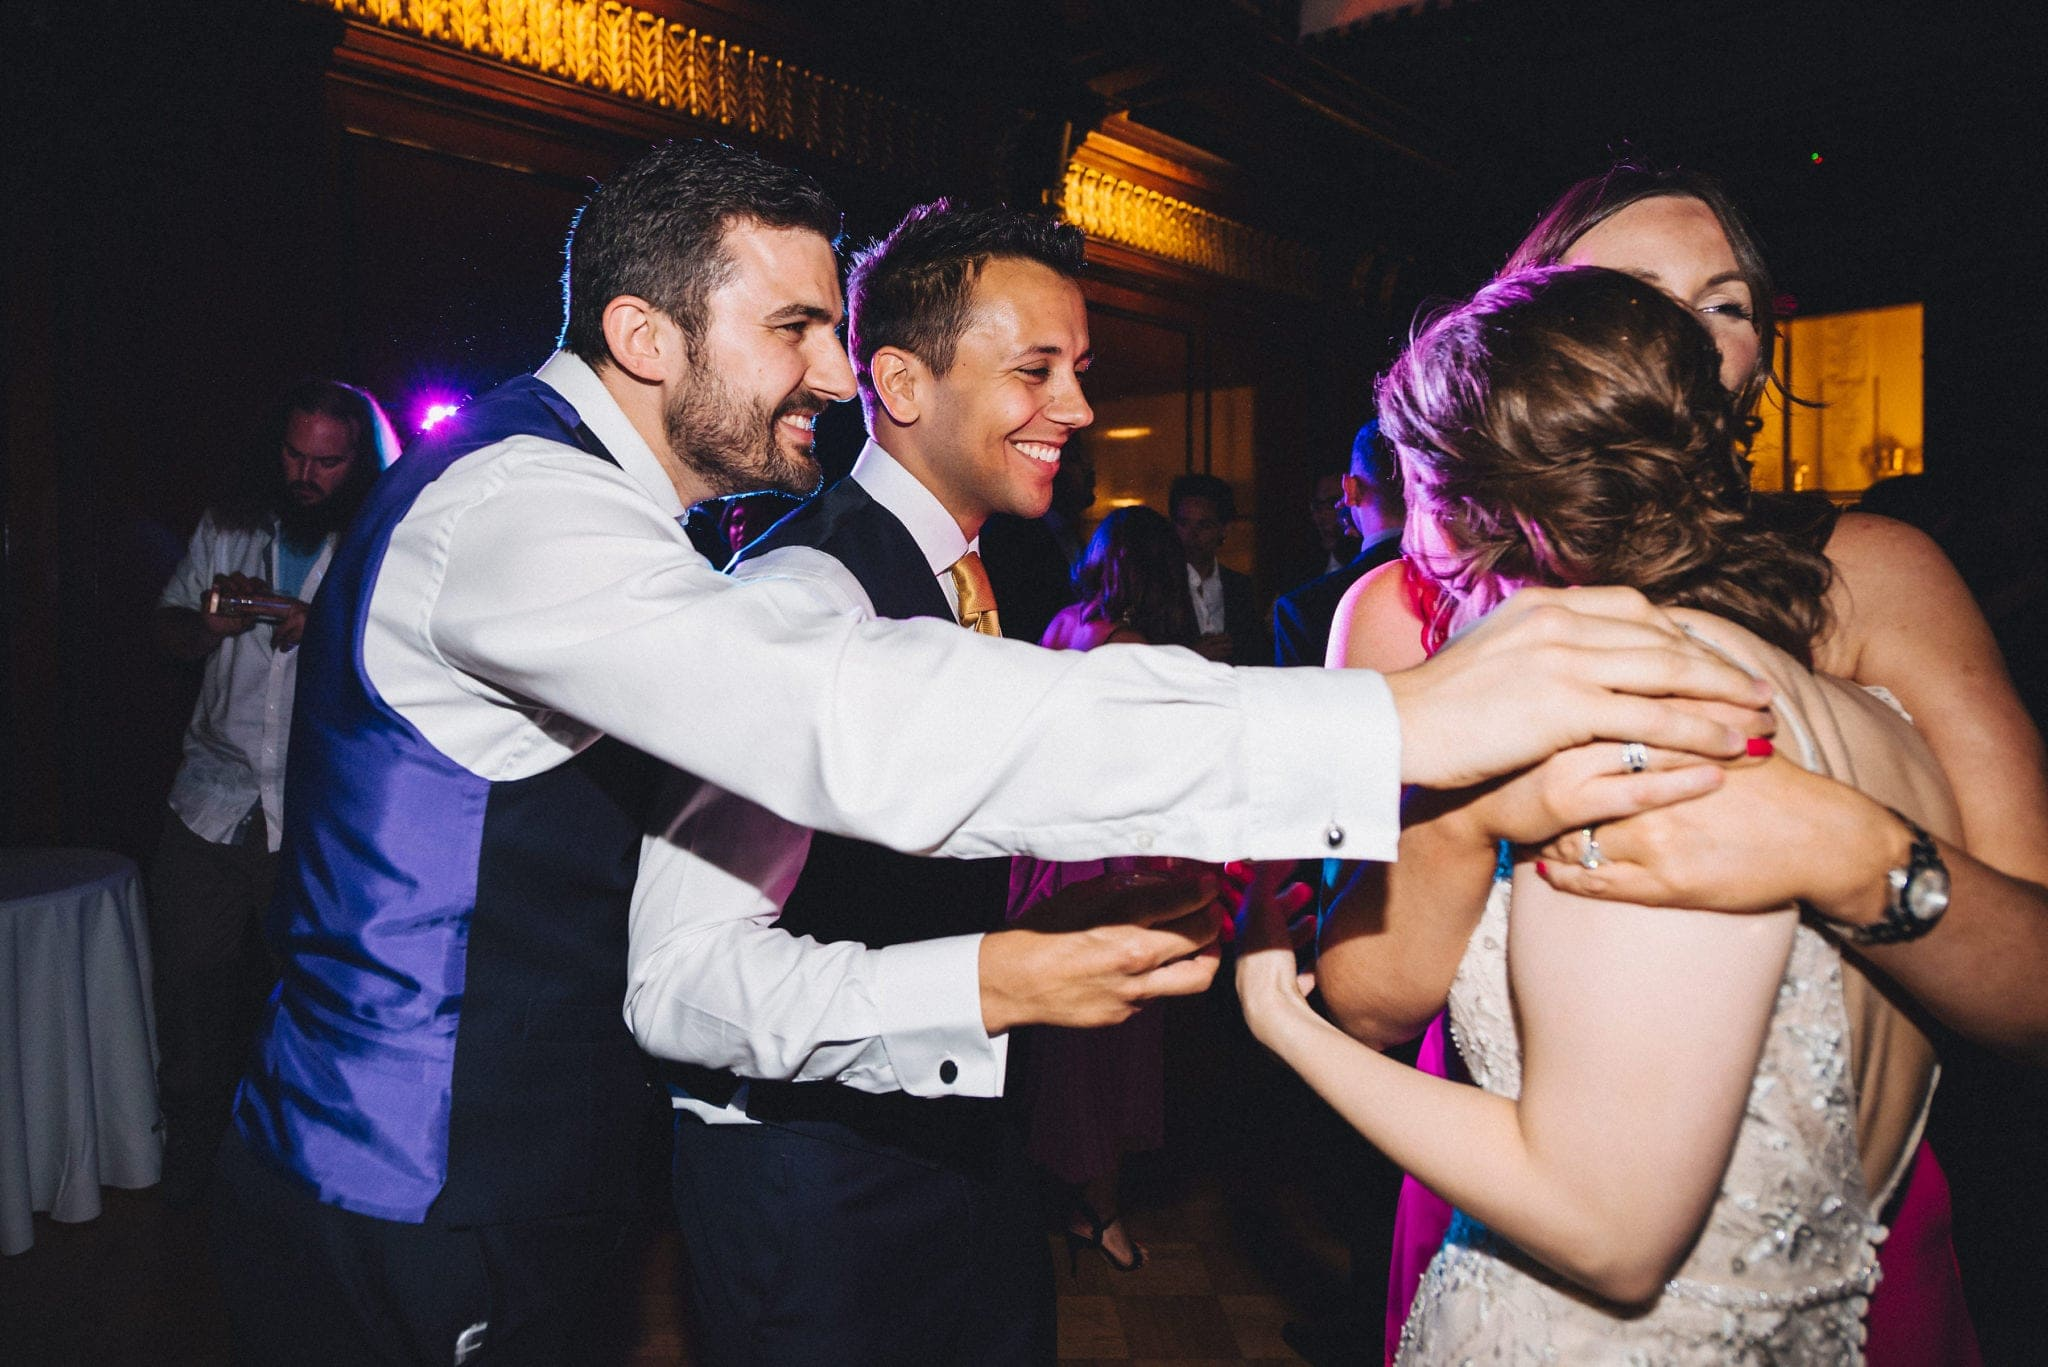 Guests hug bride and groom on dancefloor